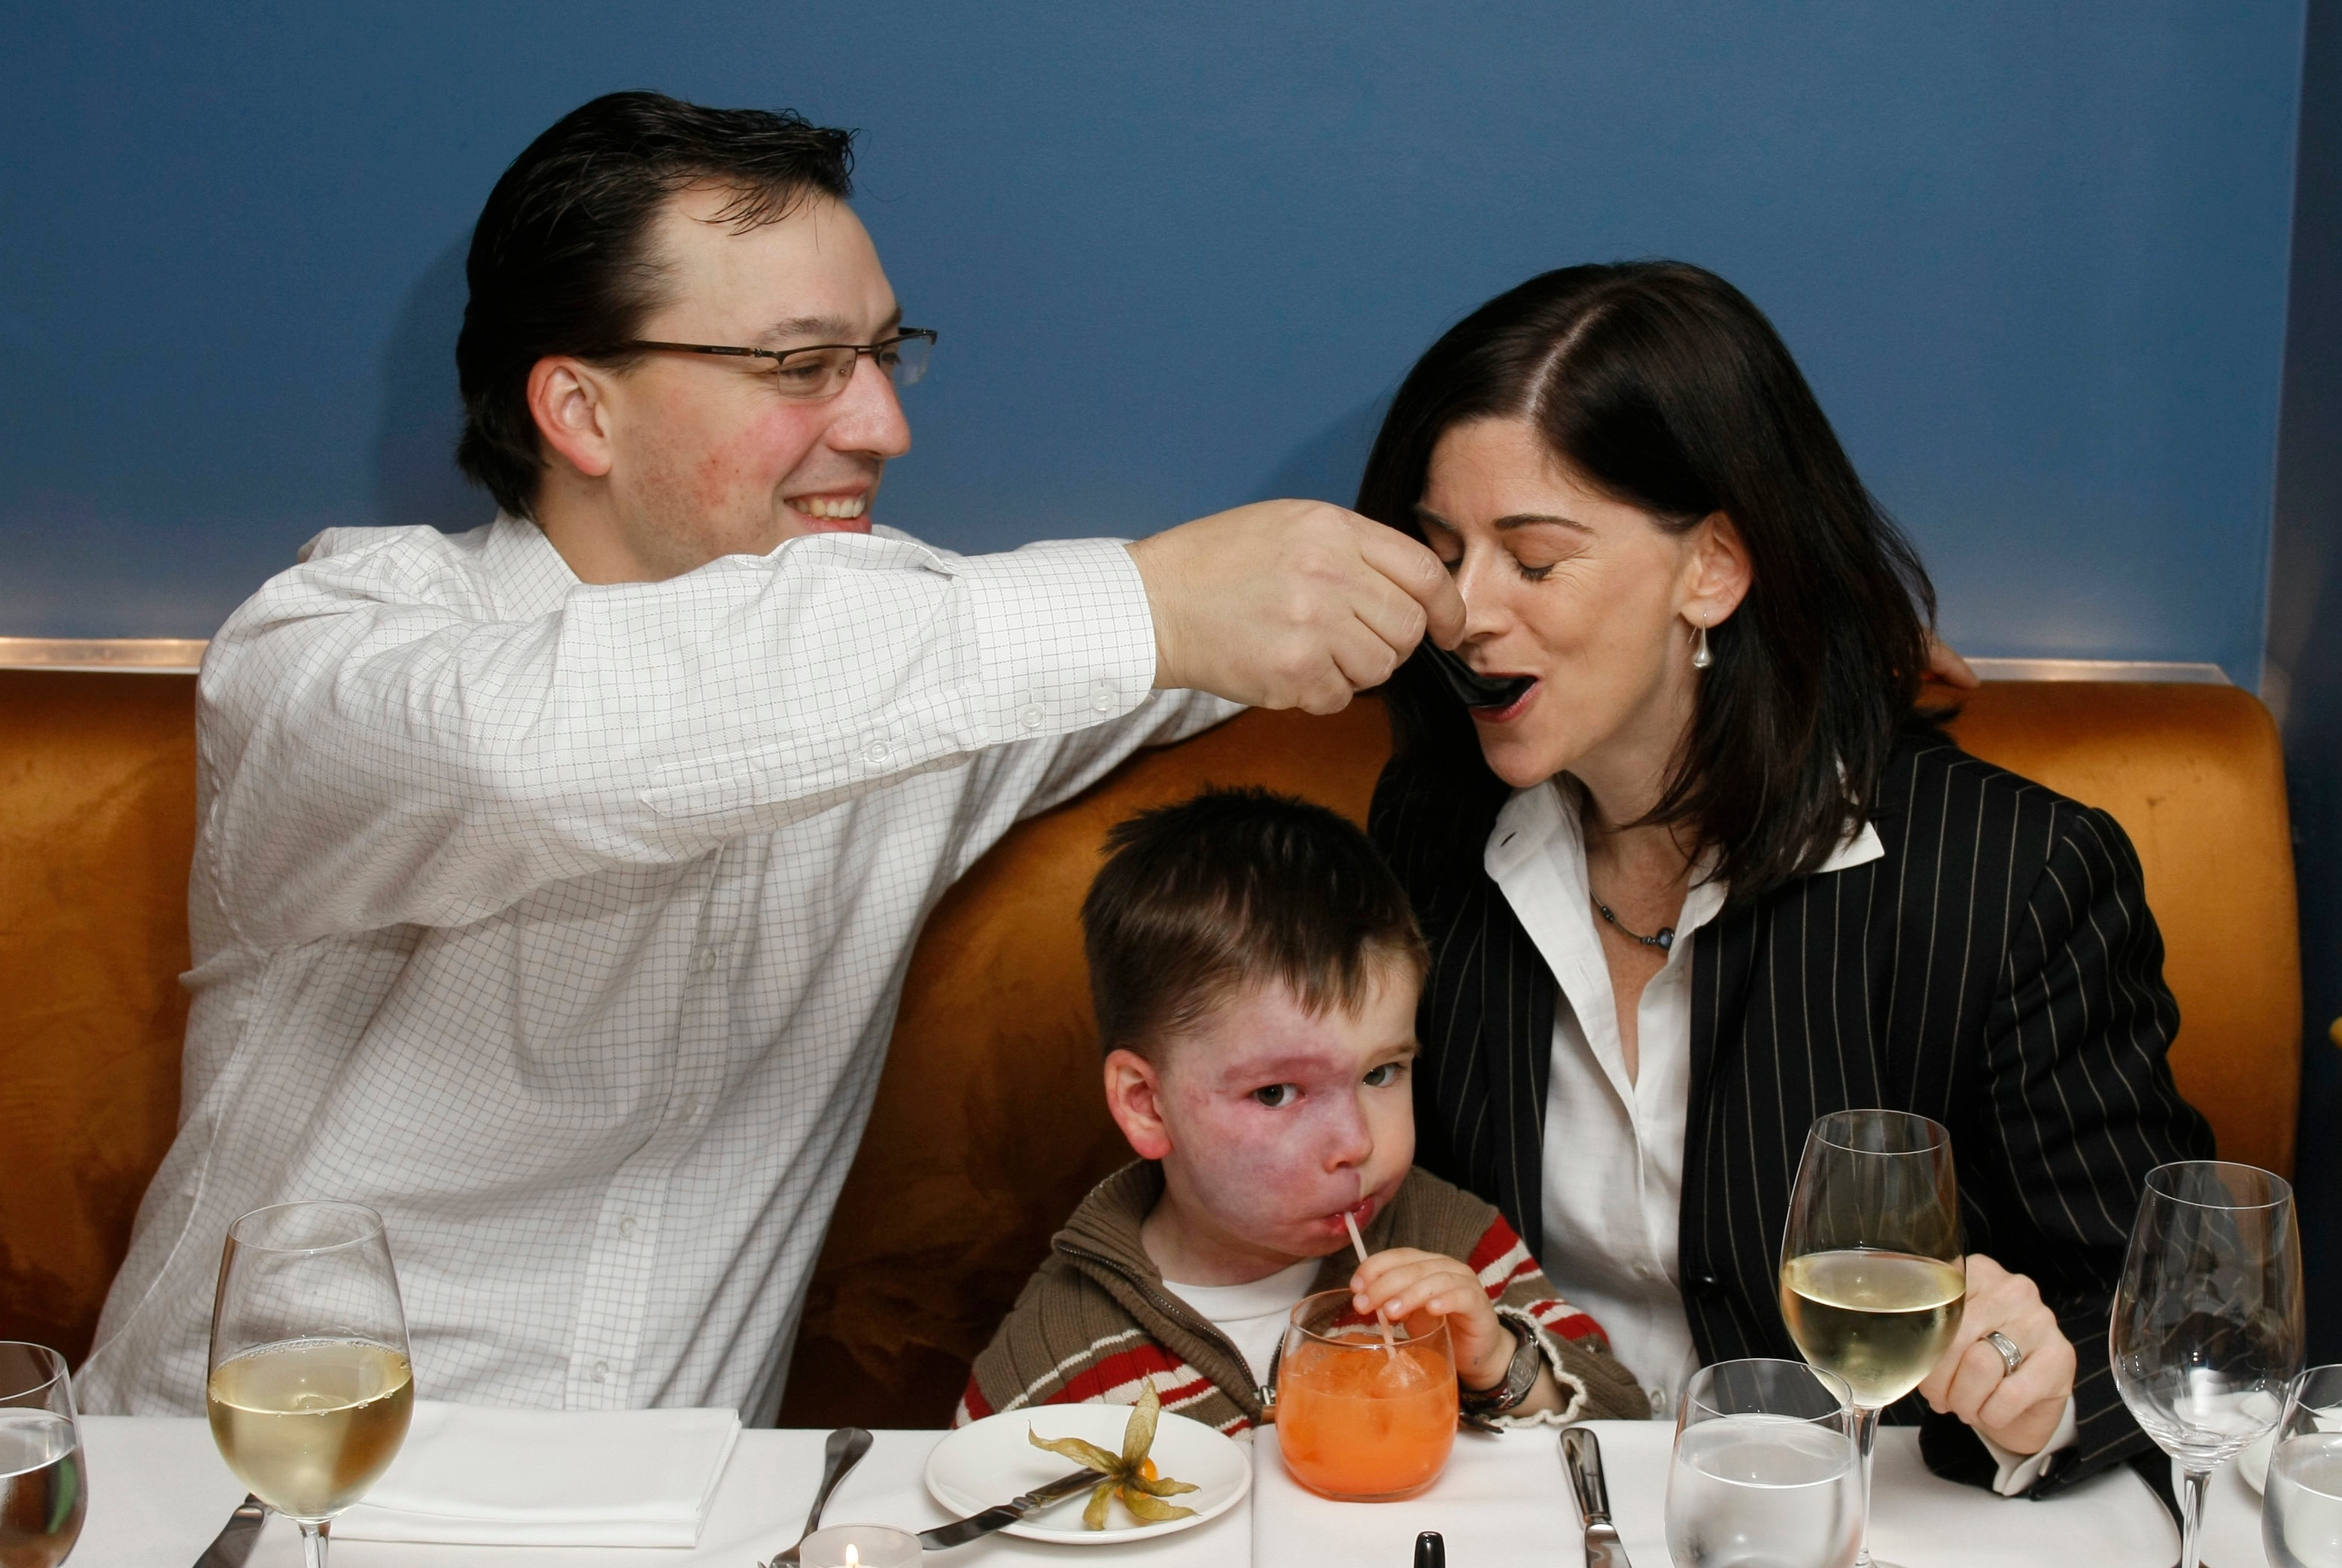 Steve, his wife Maureen and their son Seanan enjoying a meal in the Beckta dining room